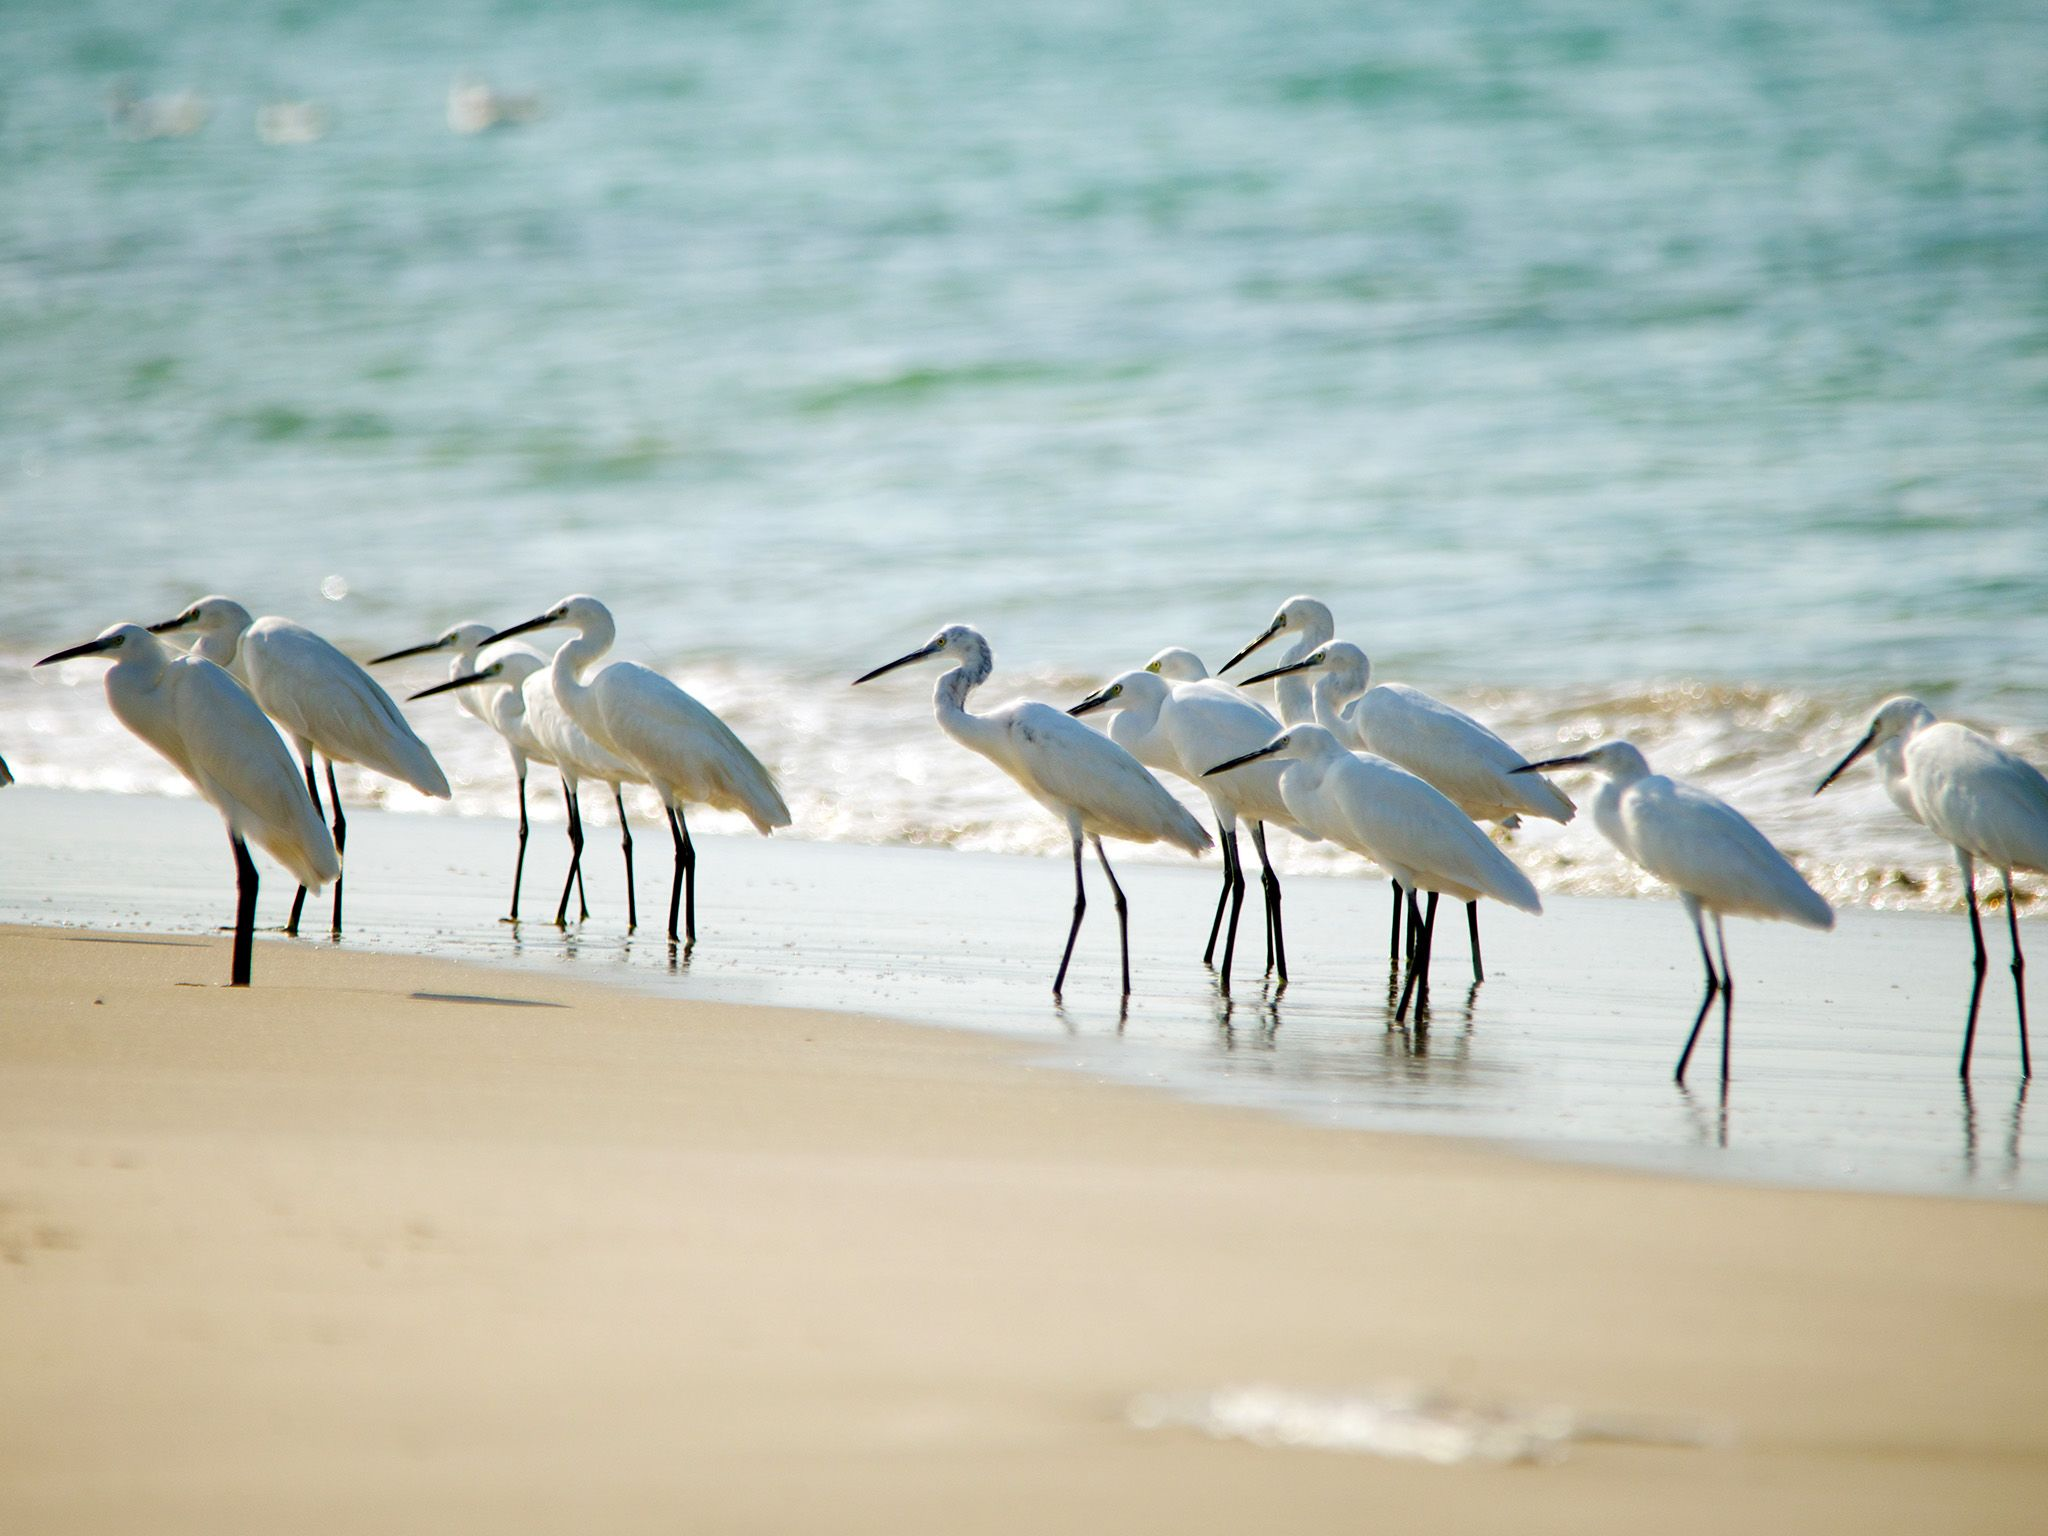 Sri Lanka: A flock of Little Egrets on the shoreline of a Sri Lankan beach. The Egrets wade into... [Photo of the day - March 2015]